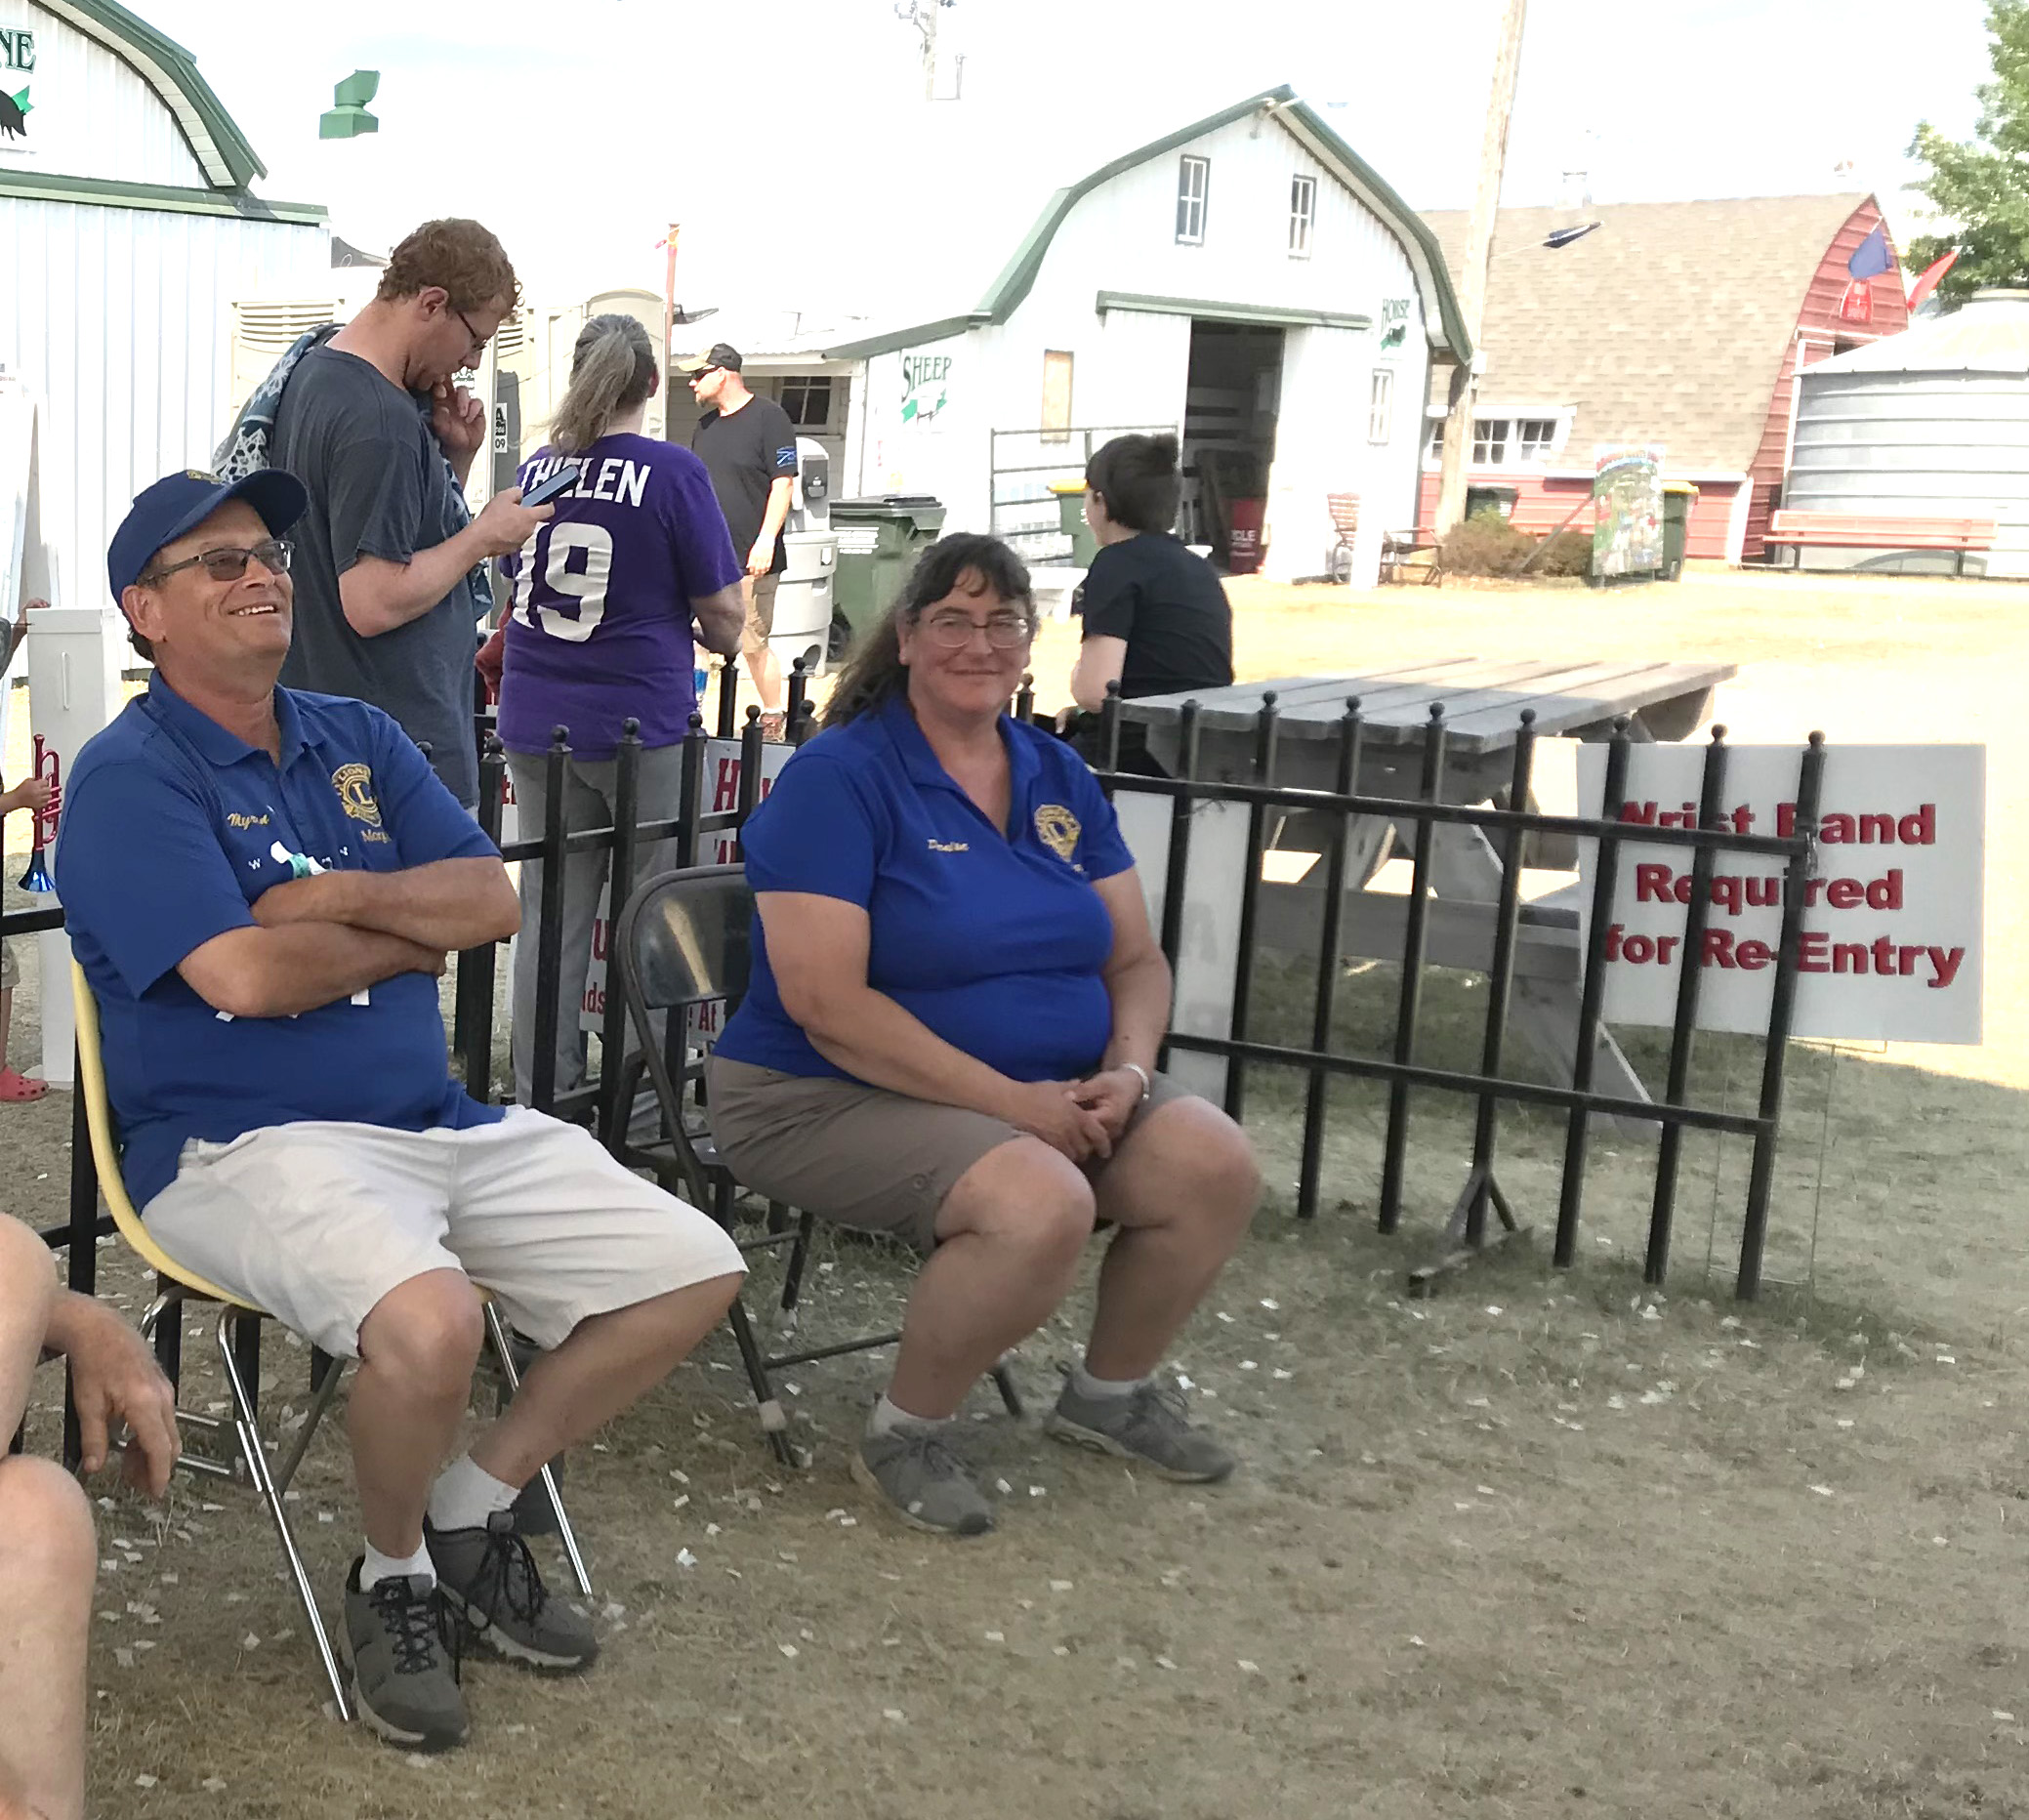 Myron Mathiowetz (left) Denise Nelsen (right), members of the Morgan Lions Club, worked the gate Sunday at the Redwood County Fair.